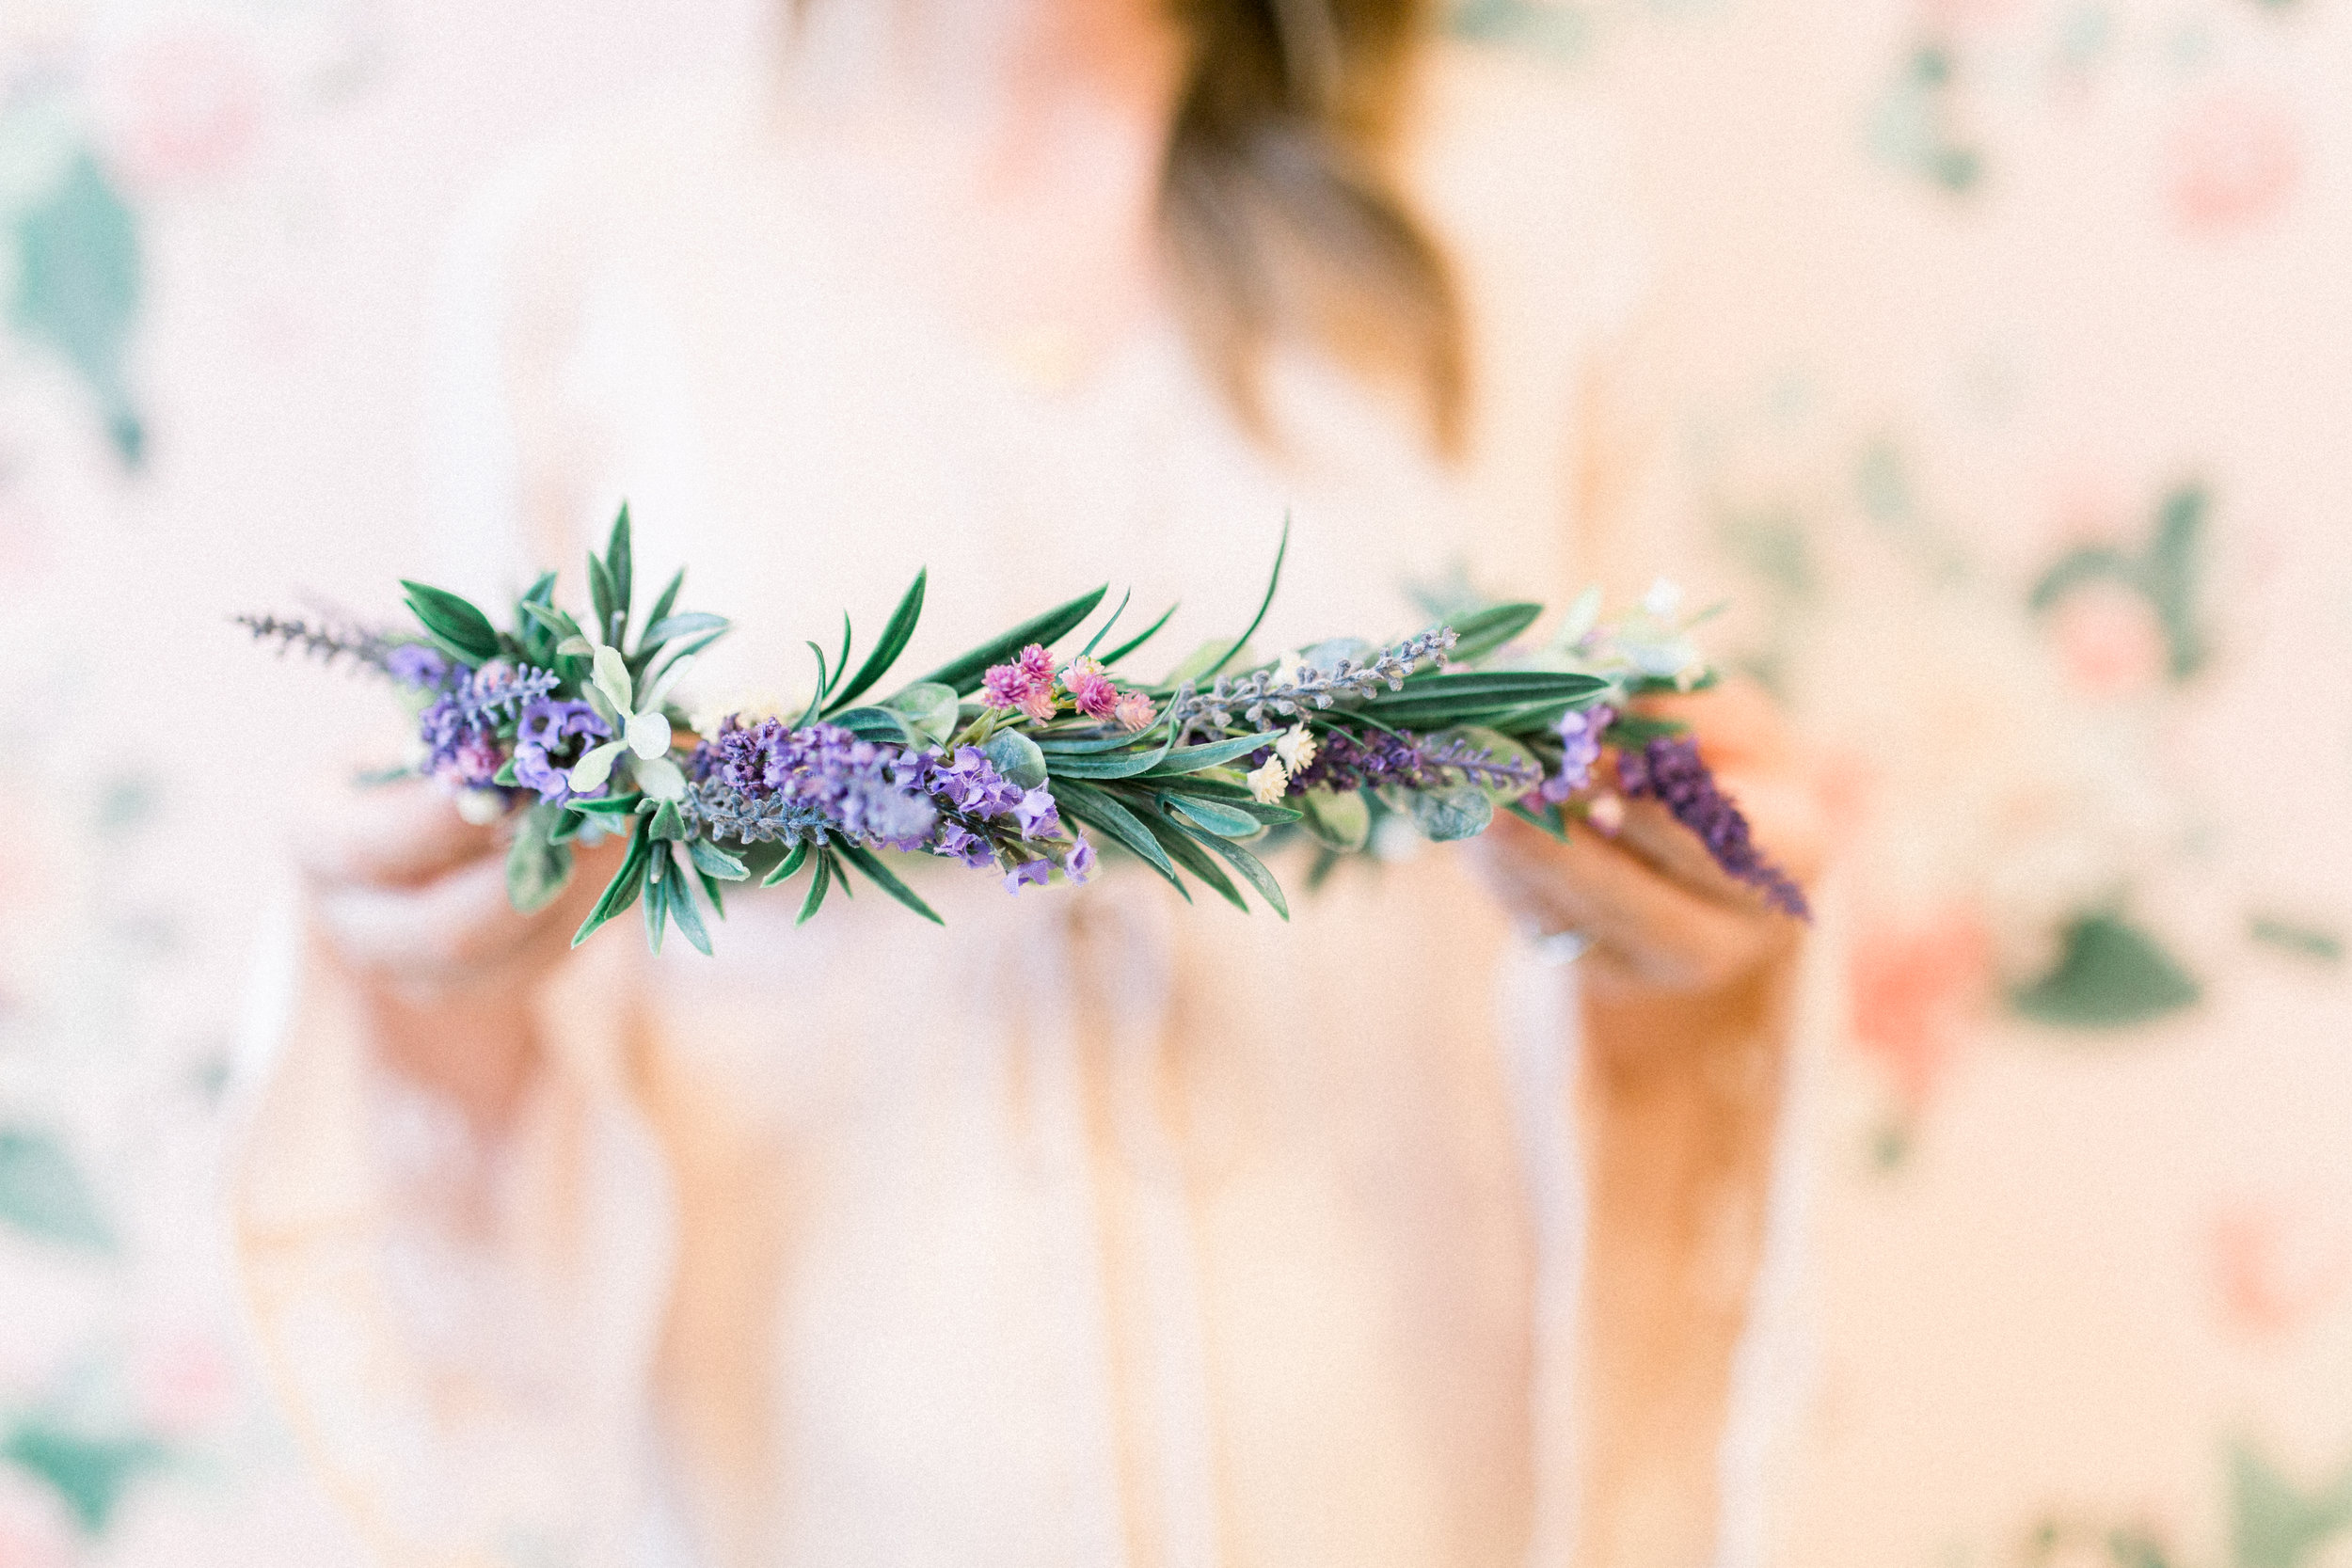 Flower crown workshop in Southern California with Love Sparkle Pretty at Morning Lavender